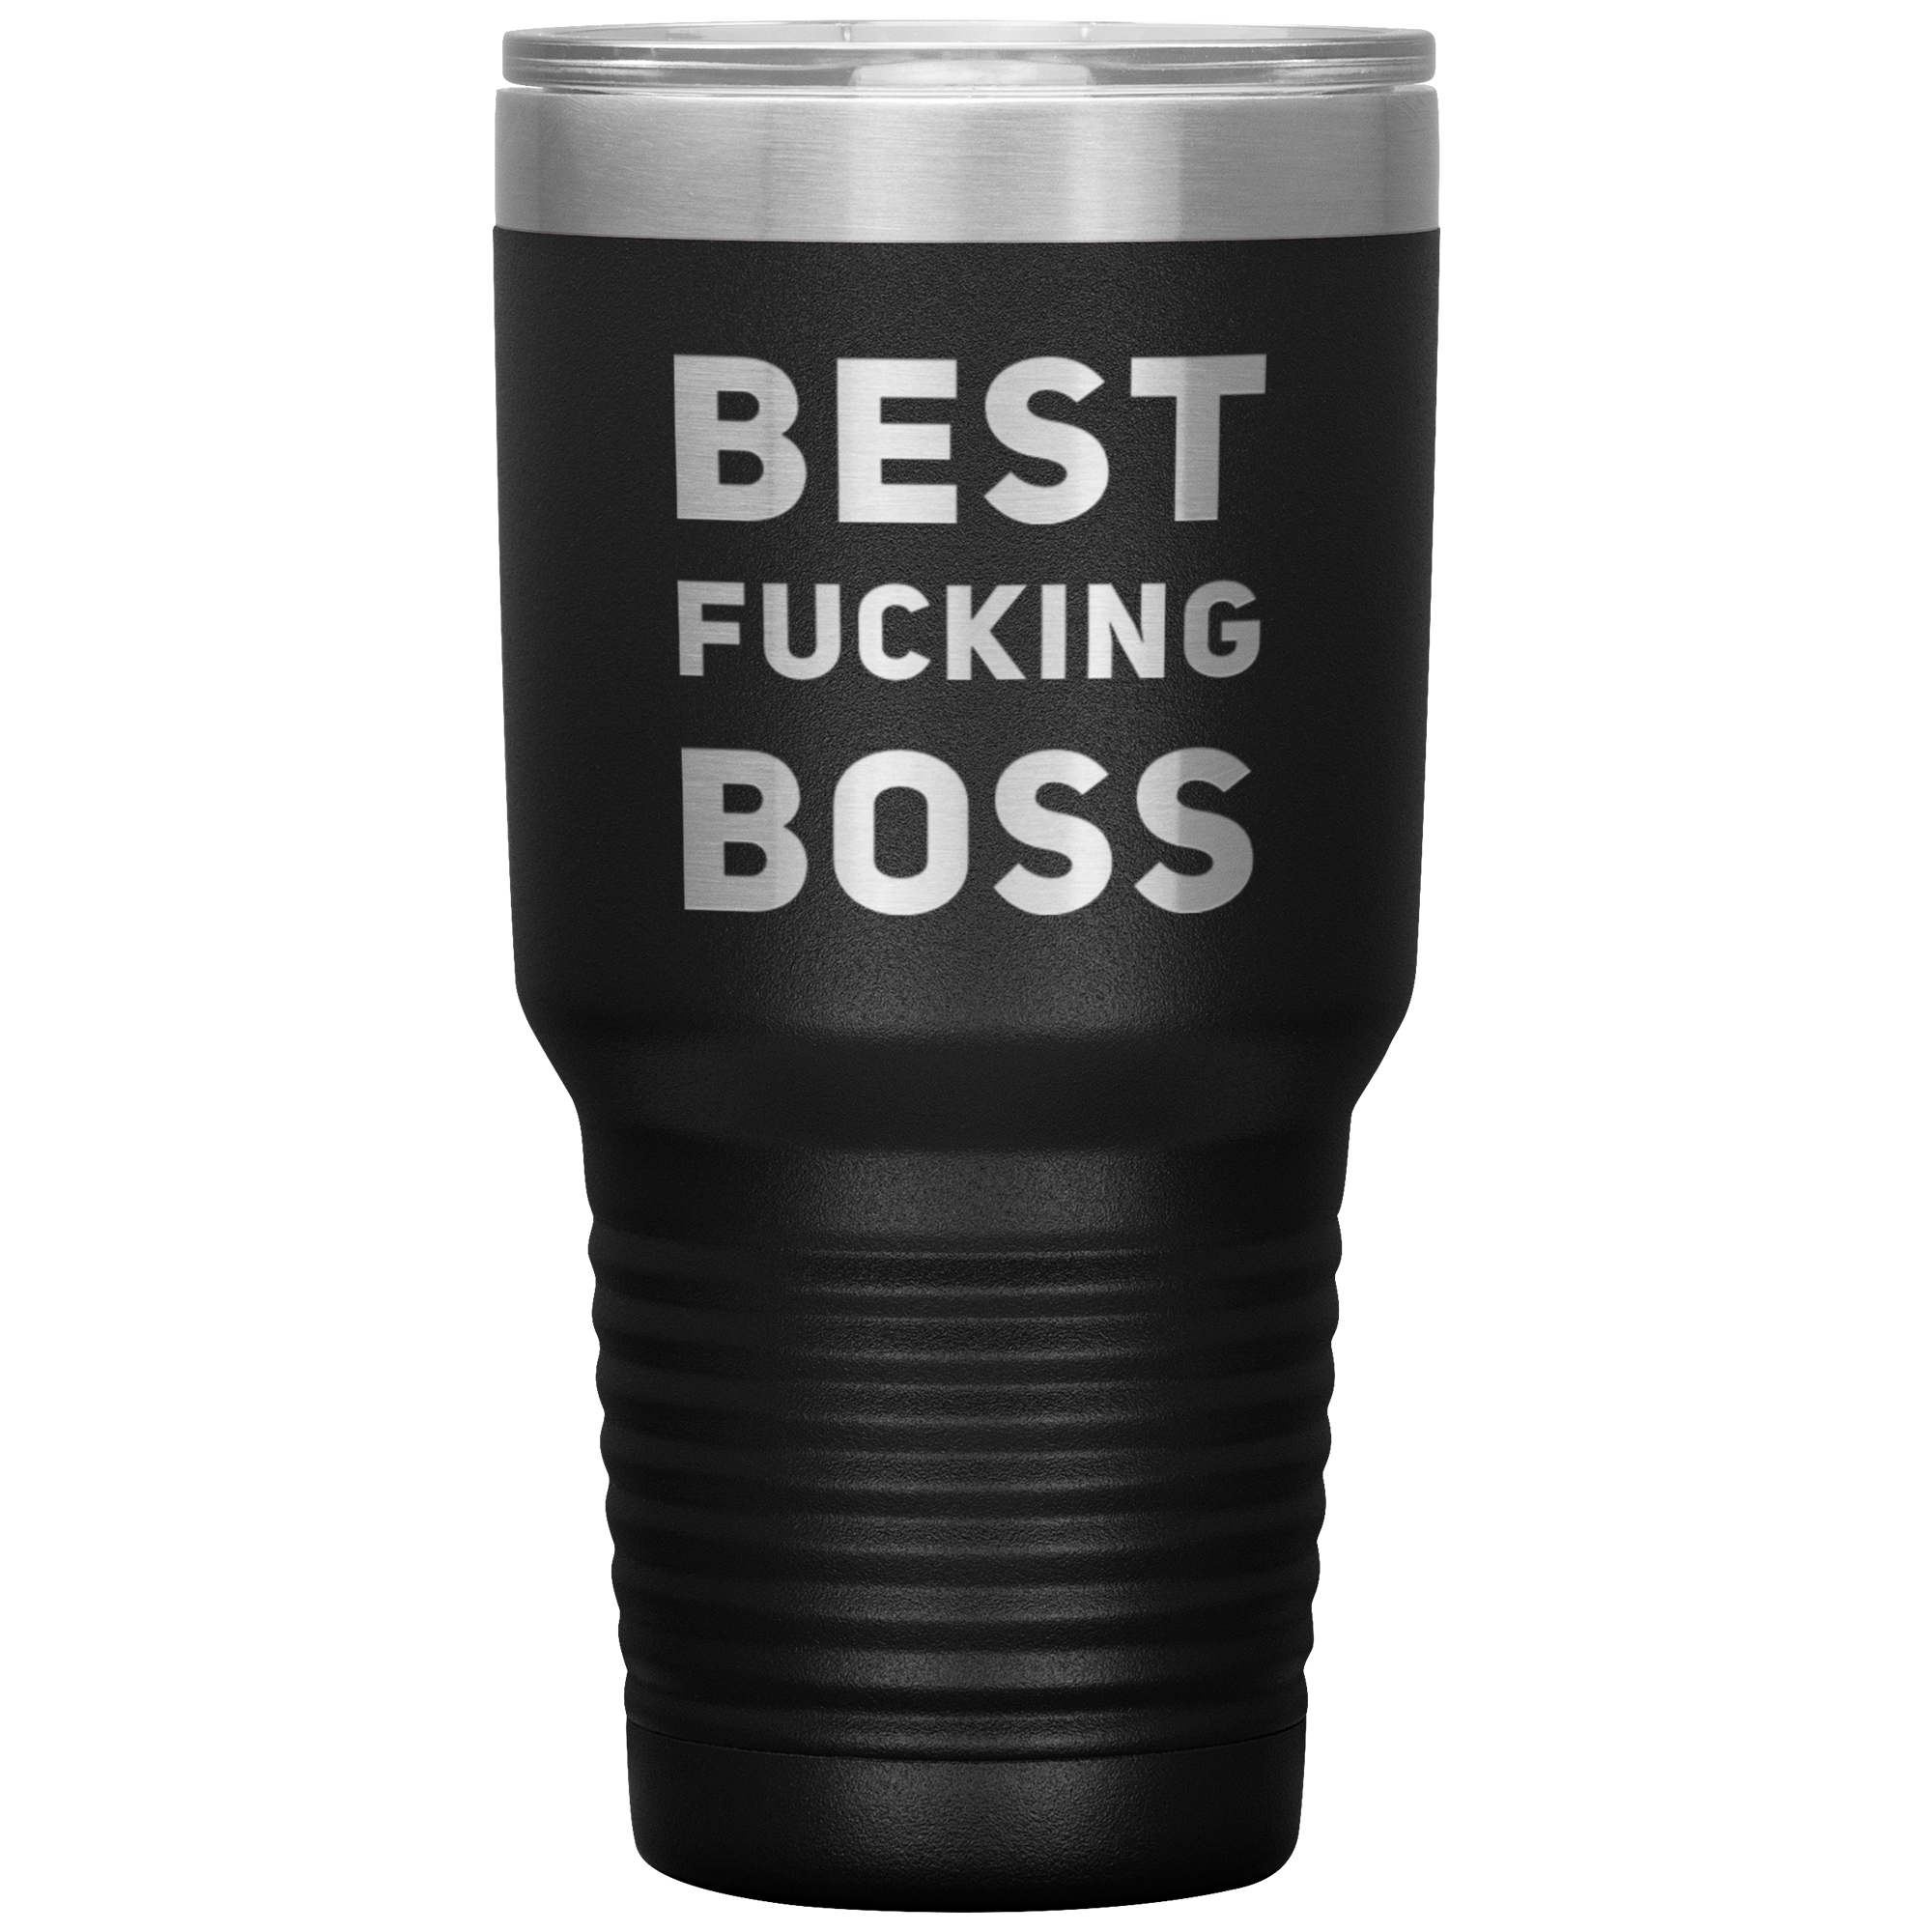 Gift For Boss Best F***ing Boss Sarcastic Employer's Appreciation Coffee Tumbler 30 oz